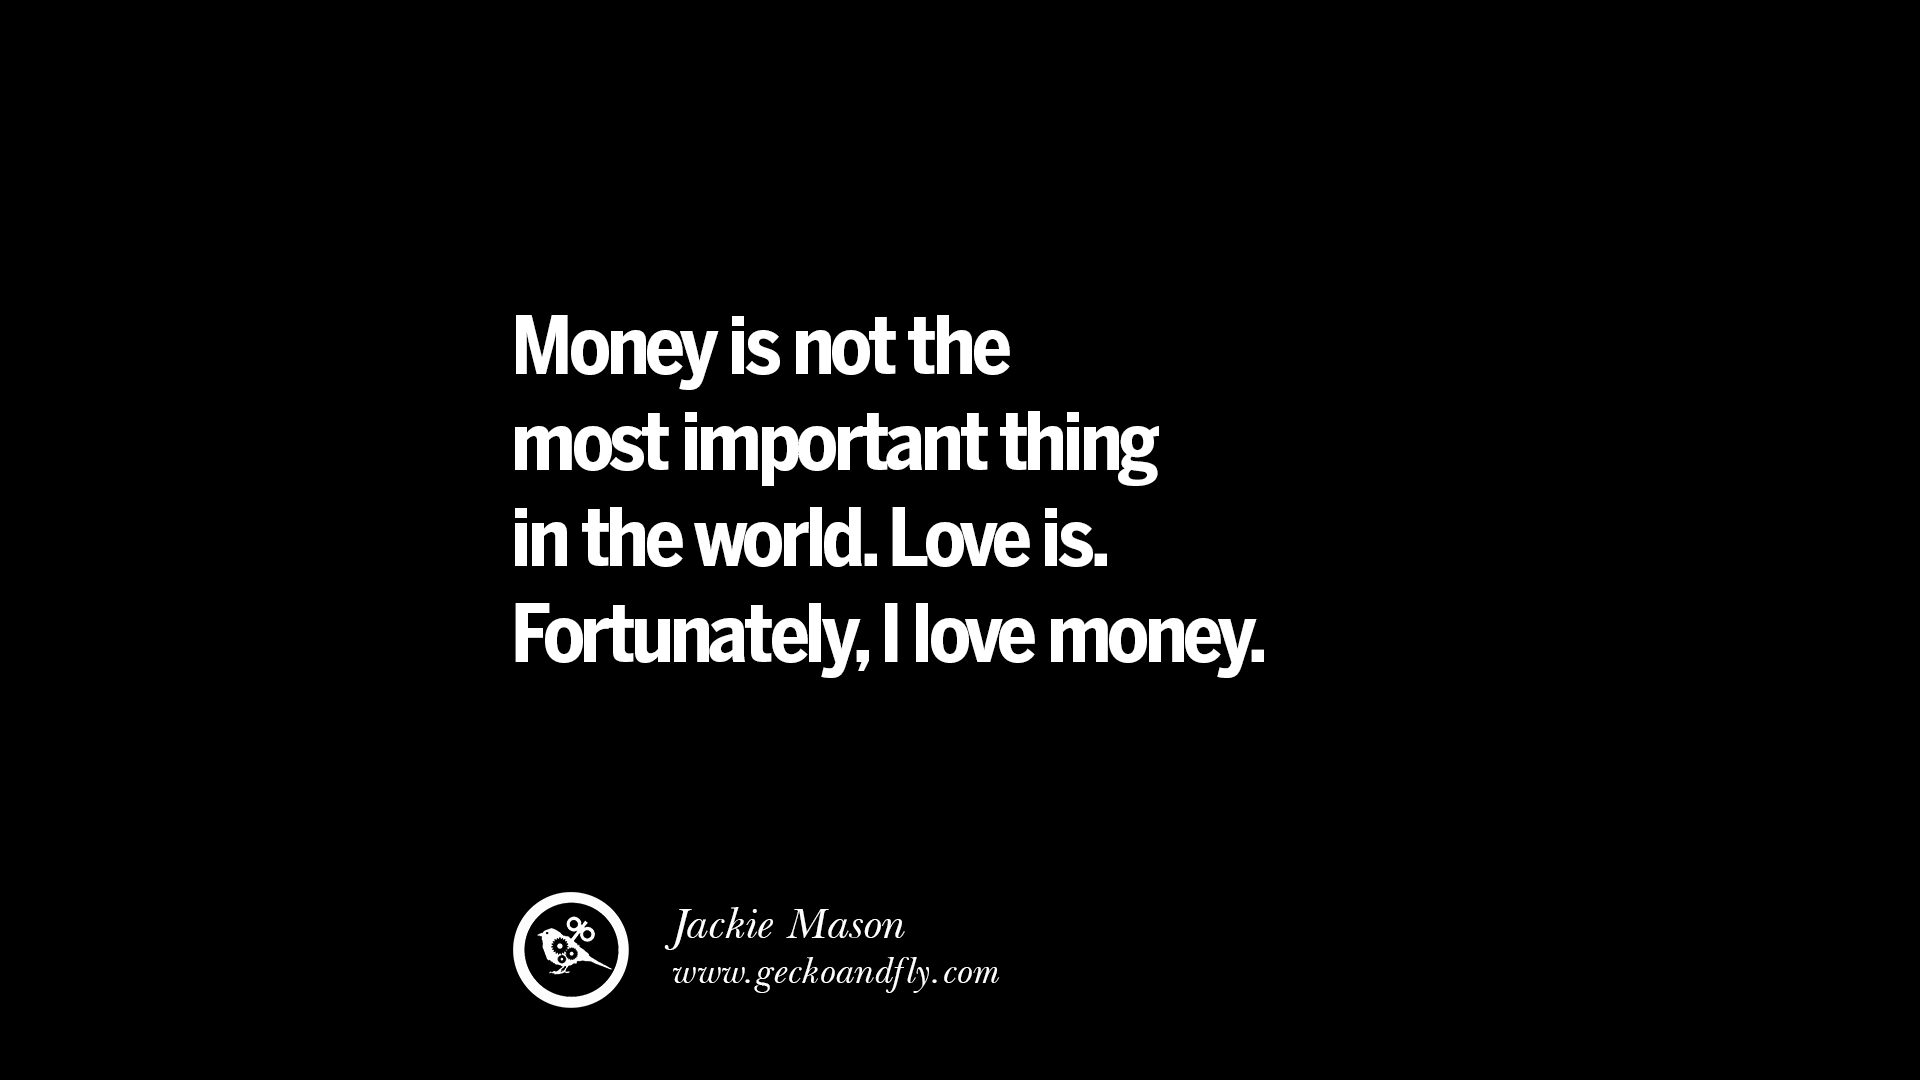 Get Money Quotes 10 Golden Rules On Money & 20 Inspiring Quotes About Money